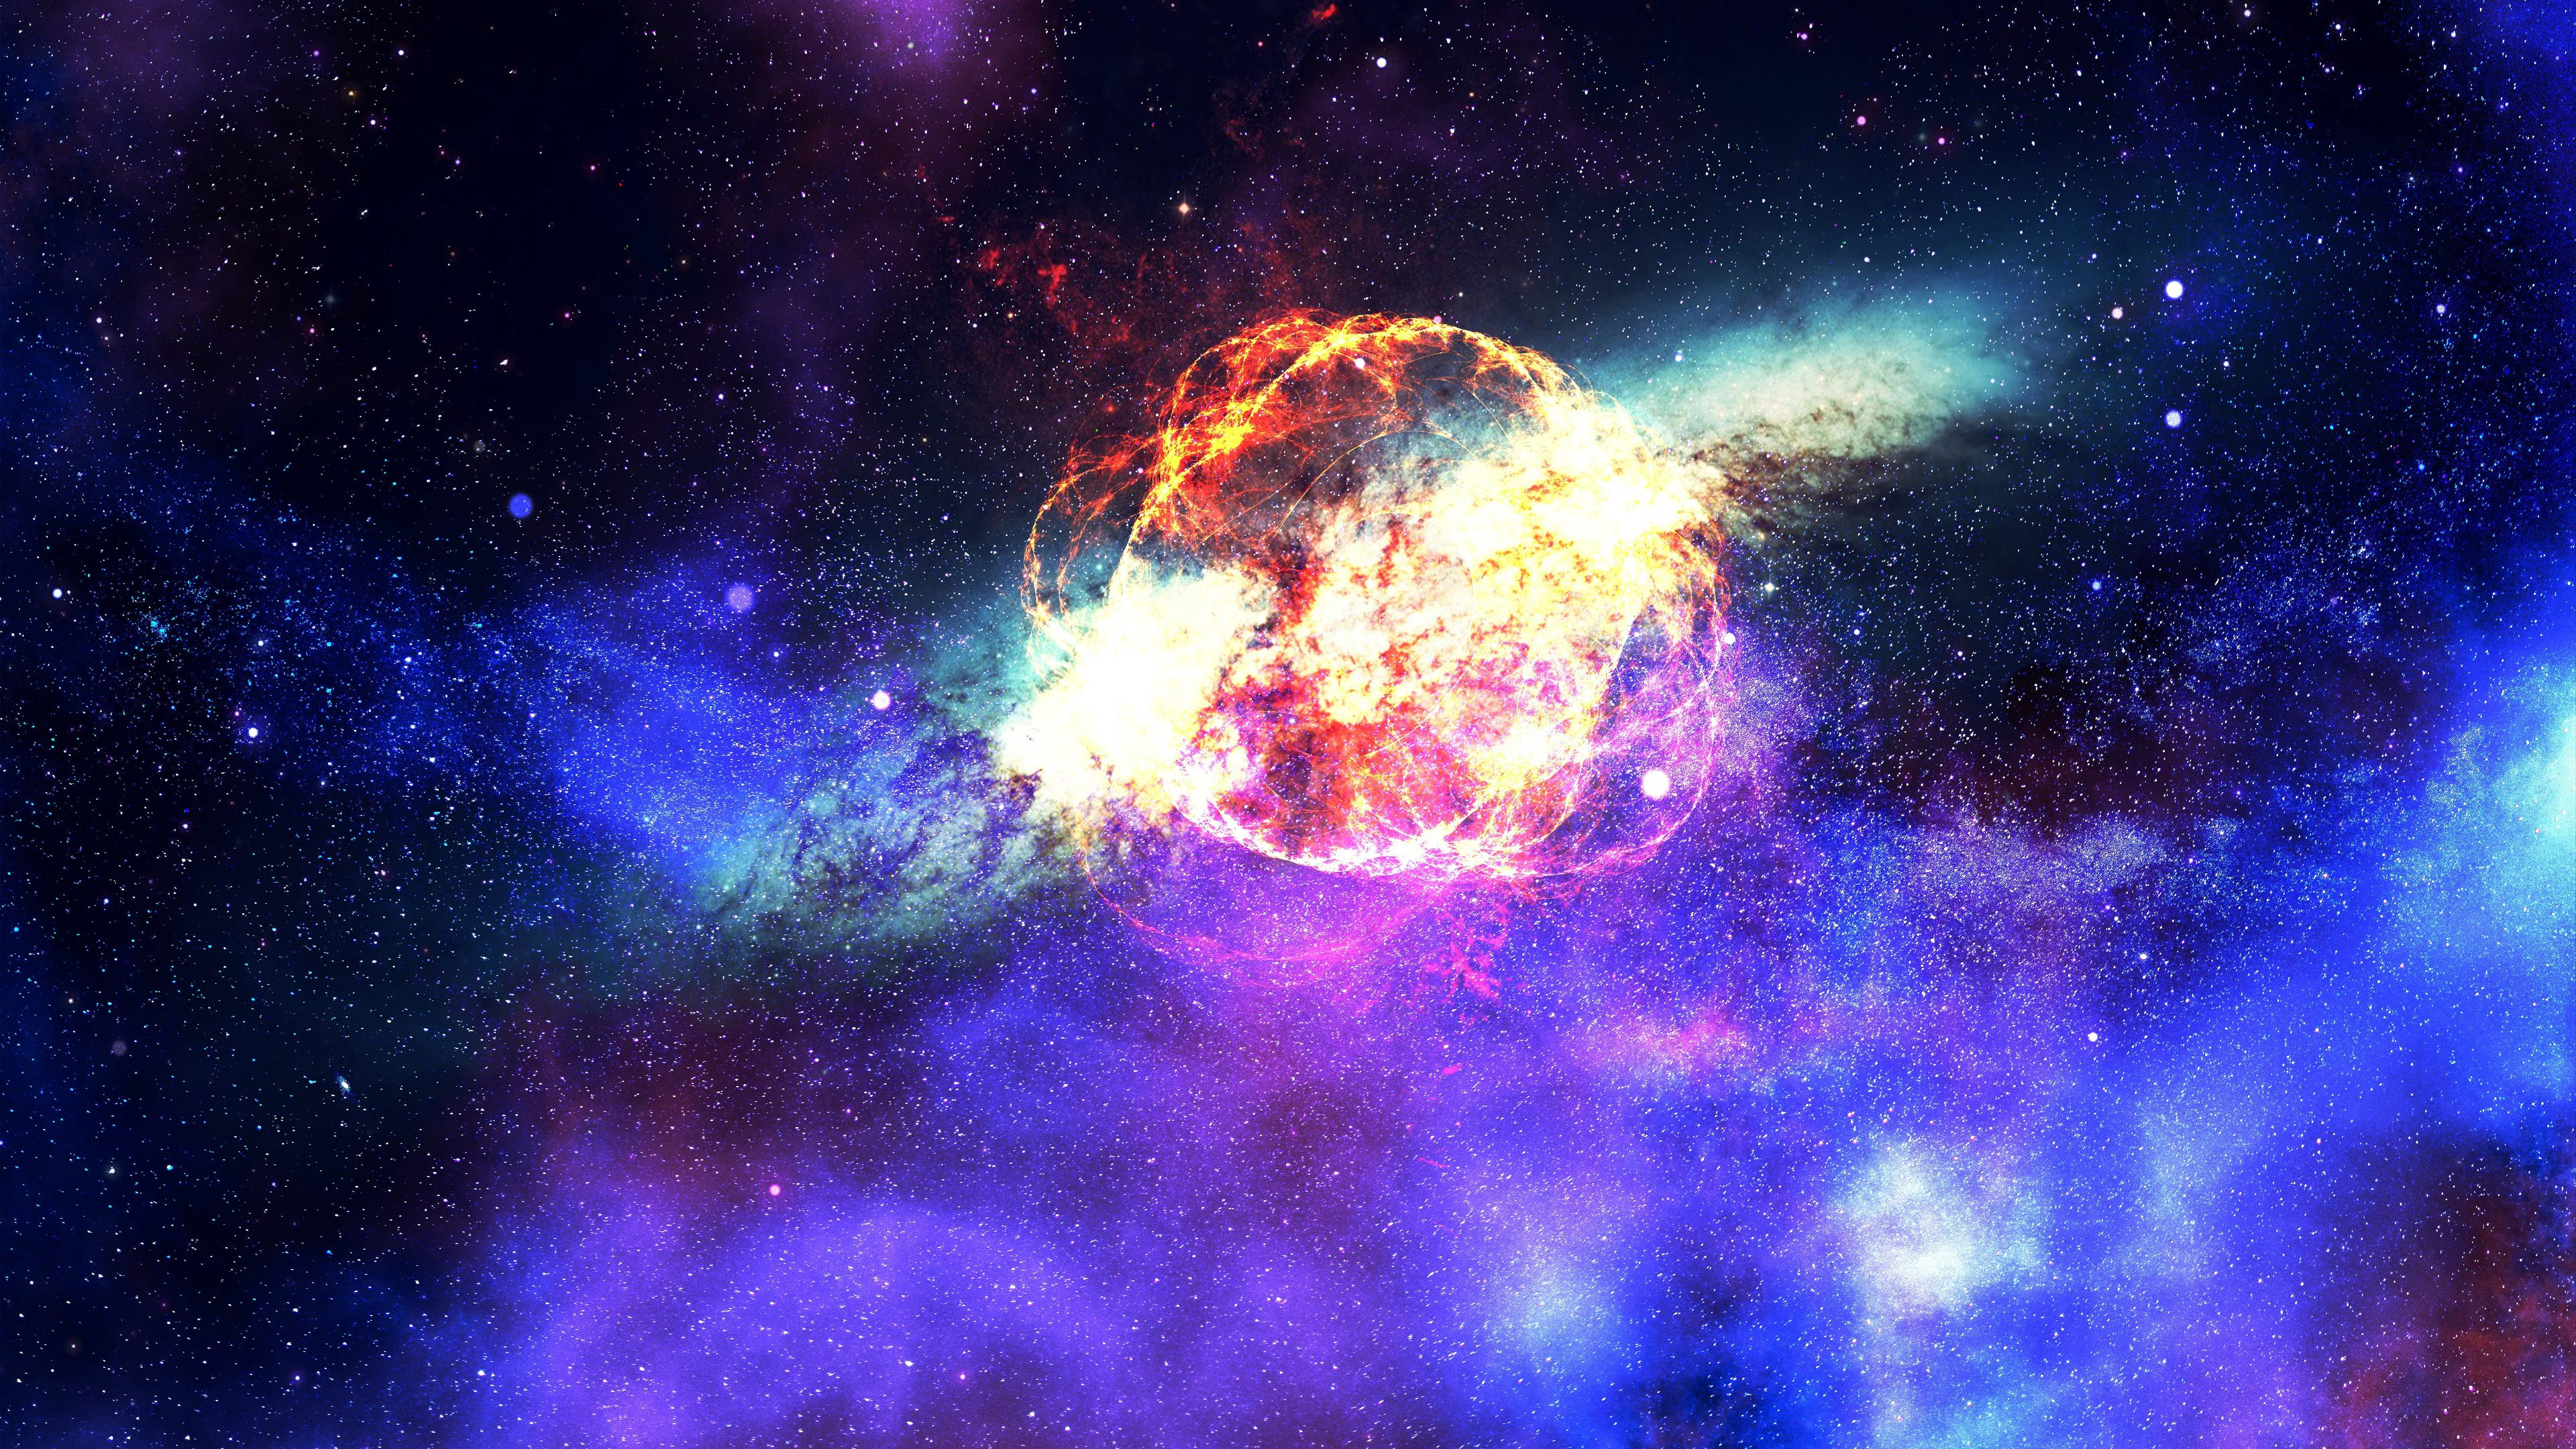 Nebula Galaxy Outer Space 4k Temple De Sagrat Cor 3840x2160 Wallpaper Teahub Io